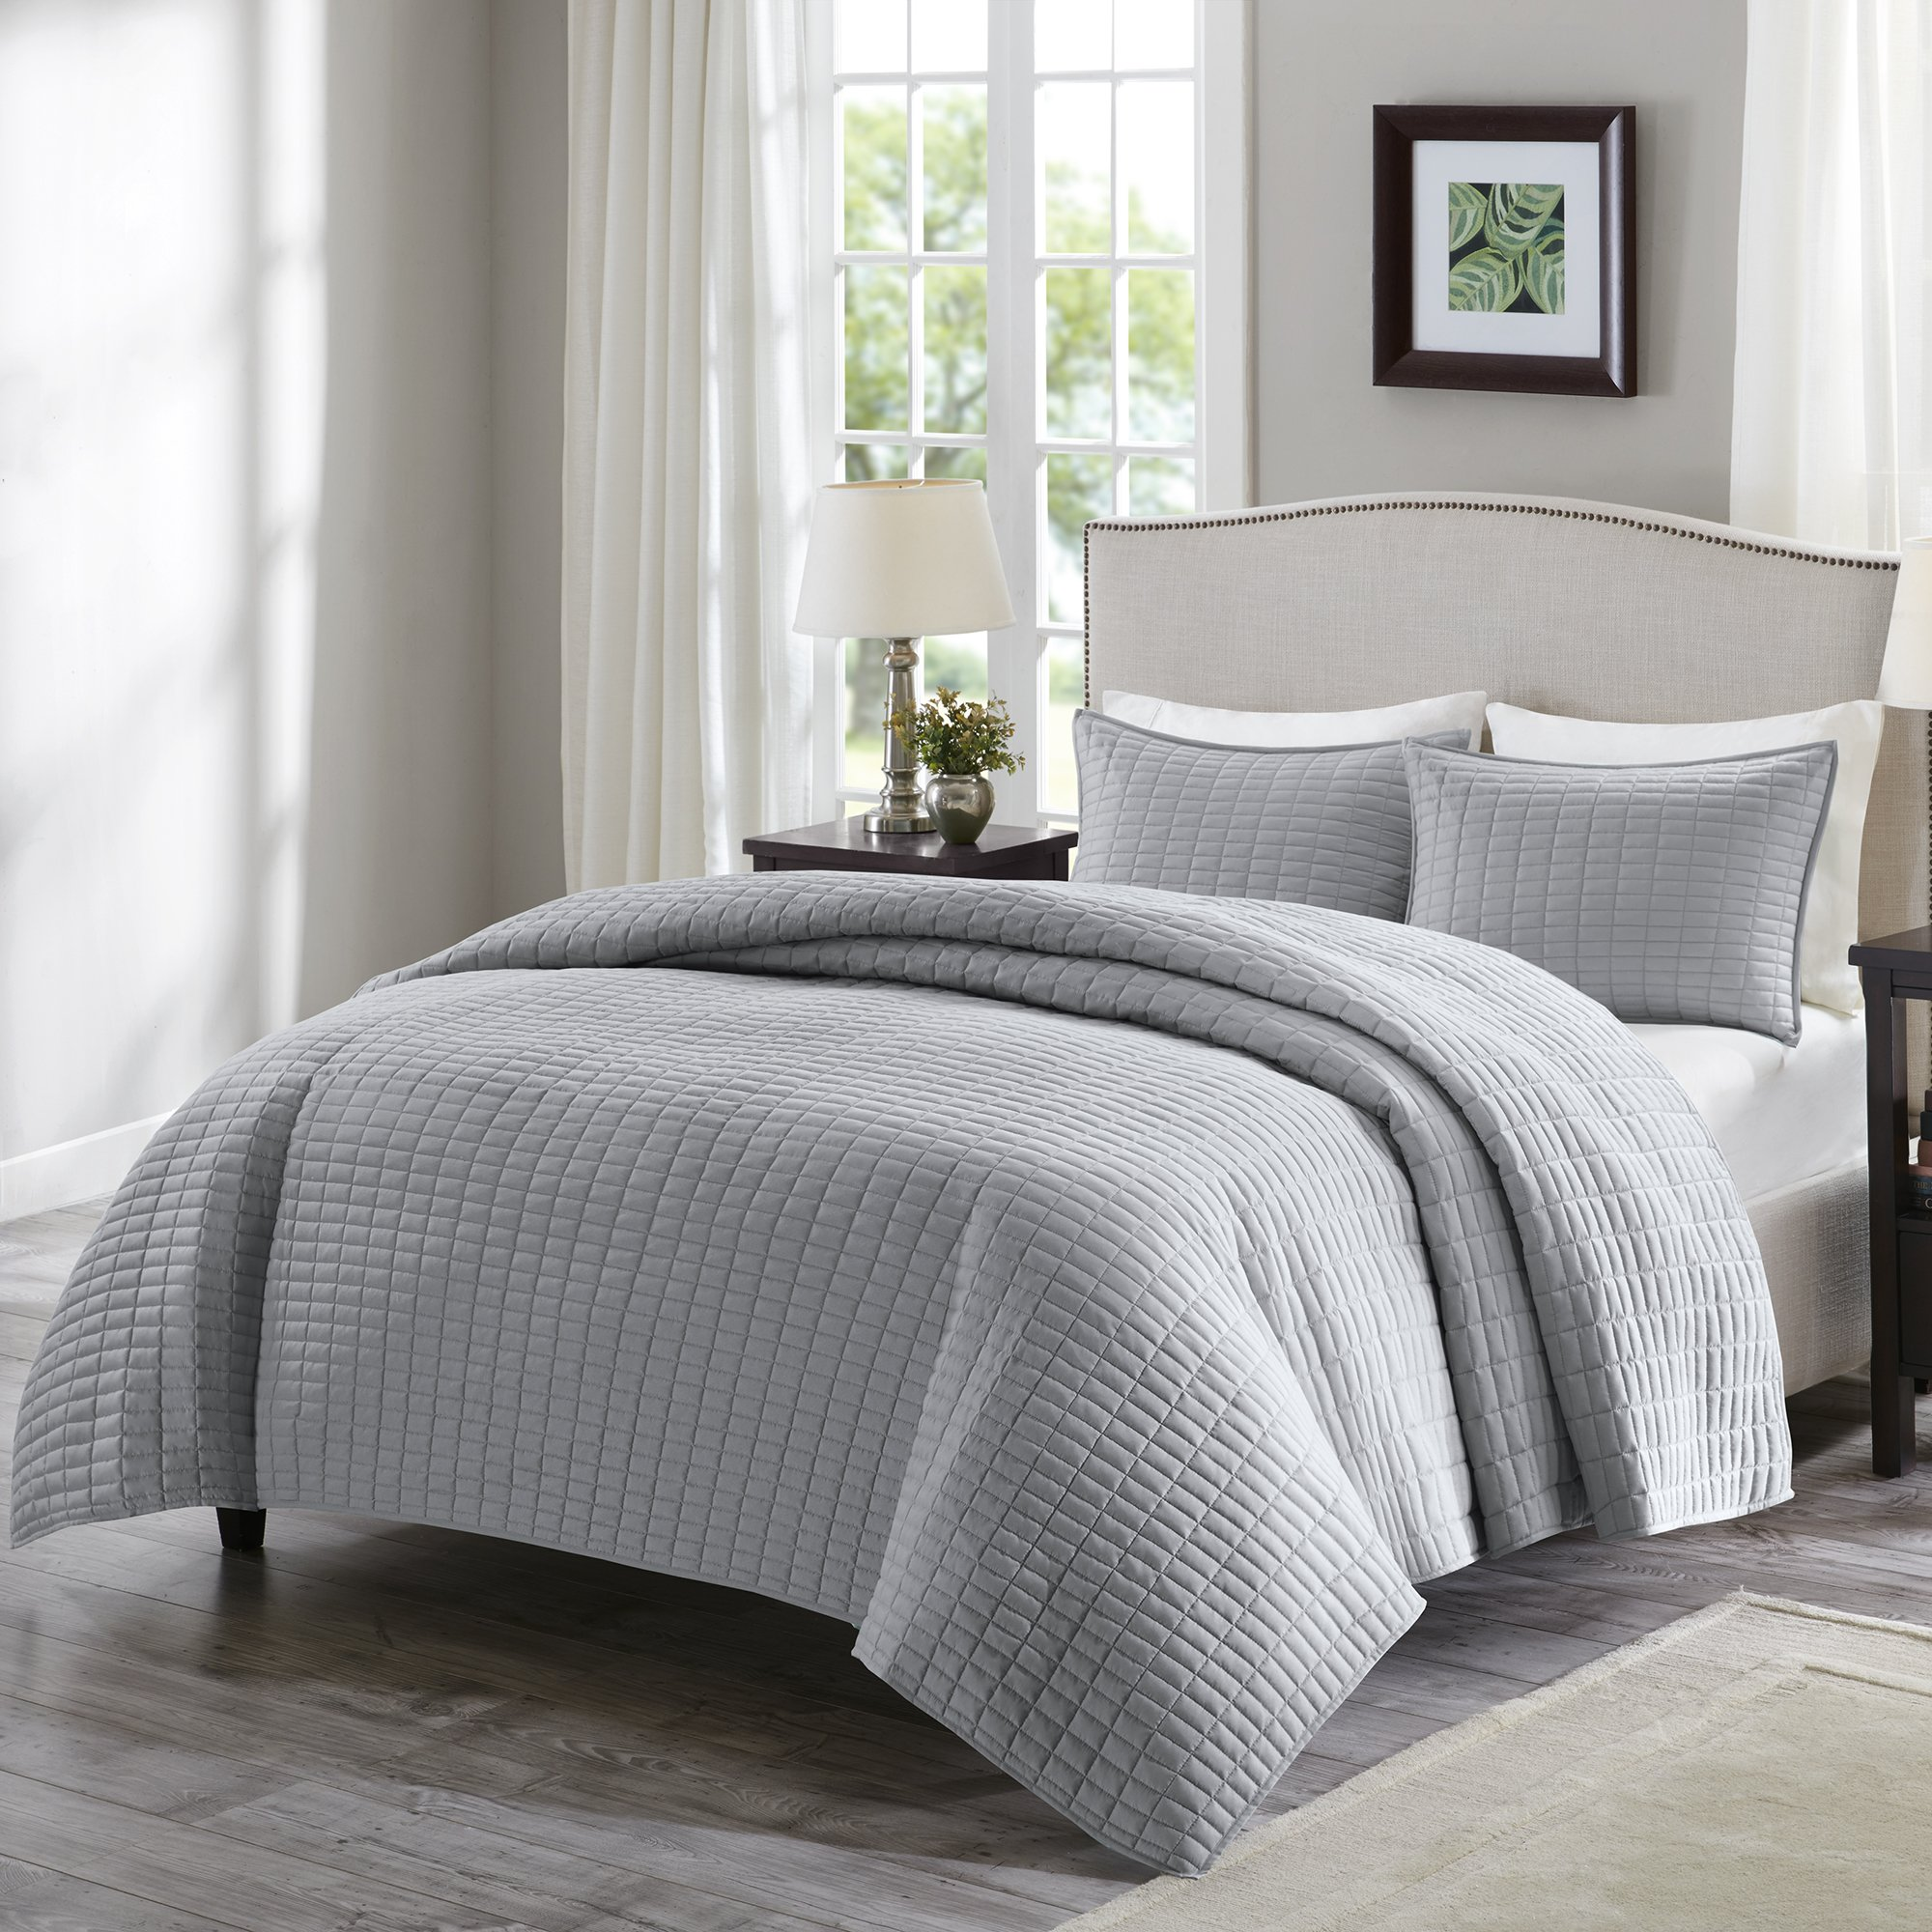 Comfort Spaces - Kienna Quilt Mini Set - 2 Piece - Gray- Stitched Quilt Pattern - Twin/Twin XL size, includes 1 Quilt, 1 Sham